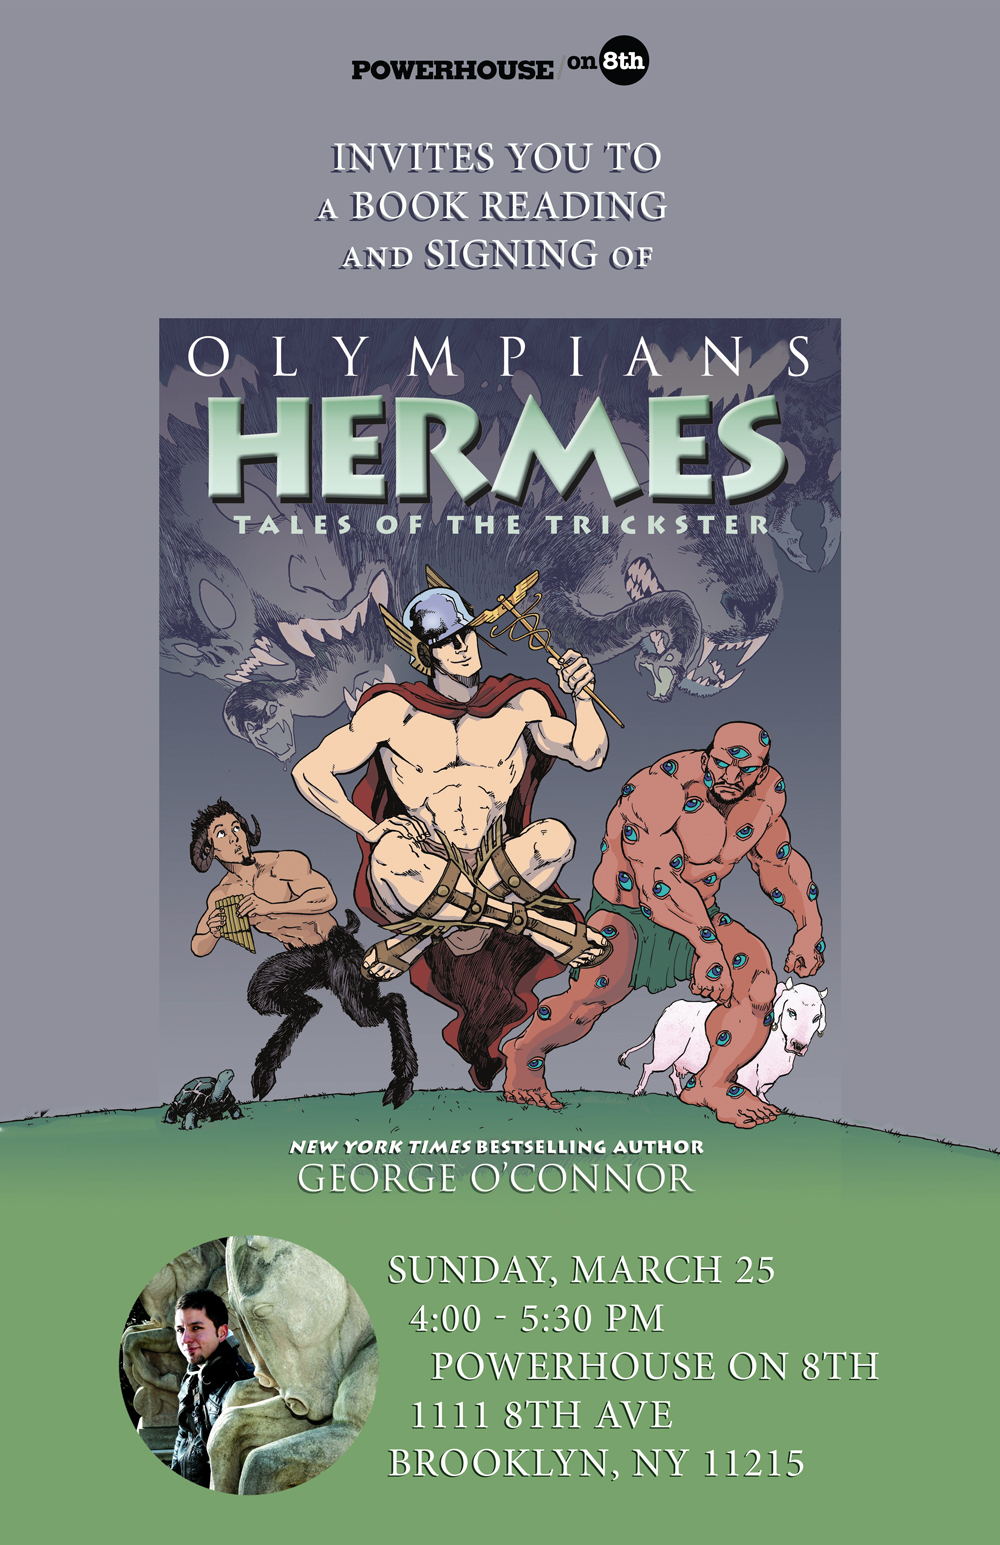 Book Reading & Signing: The Olympians: HERMES by George O'Connor